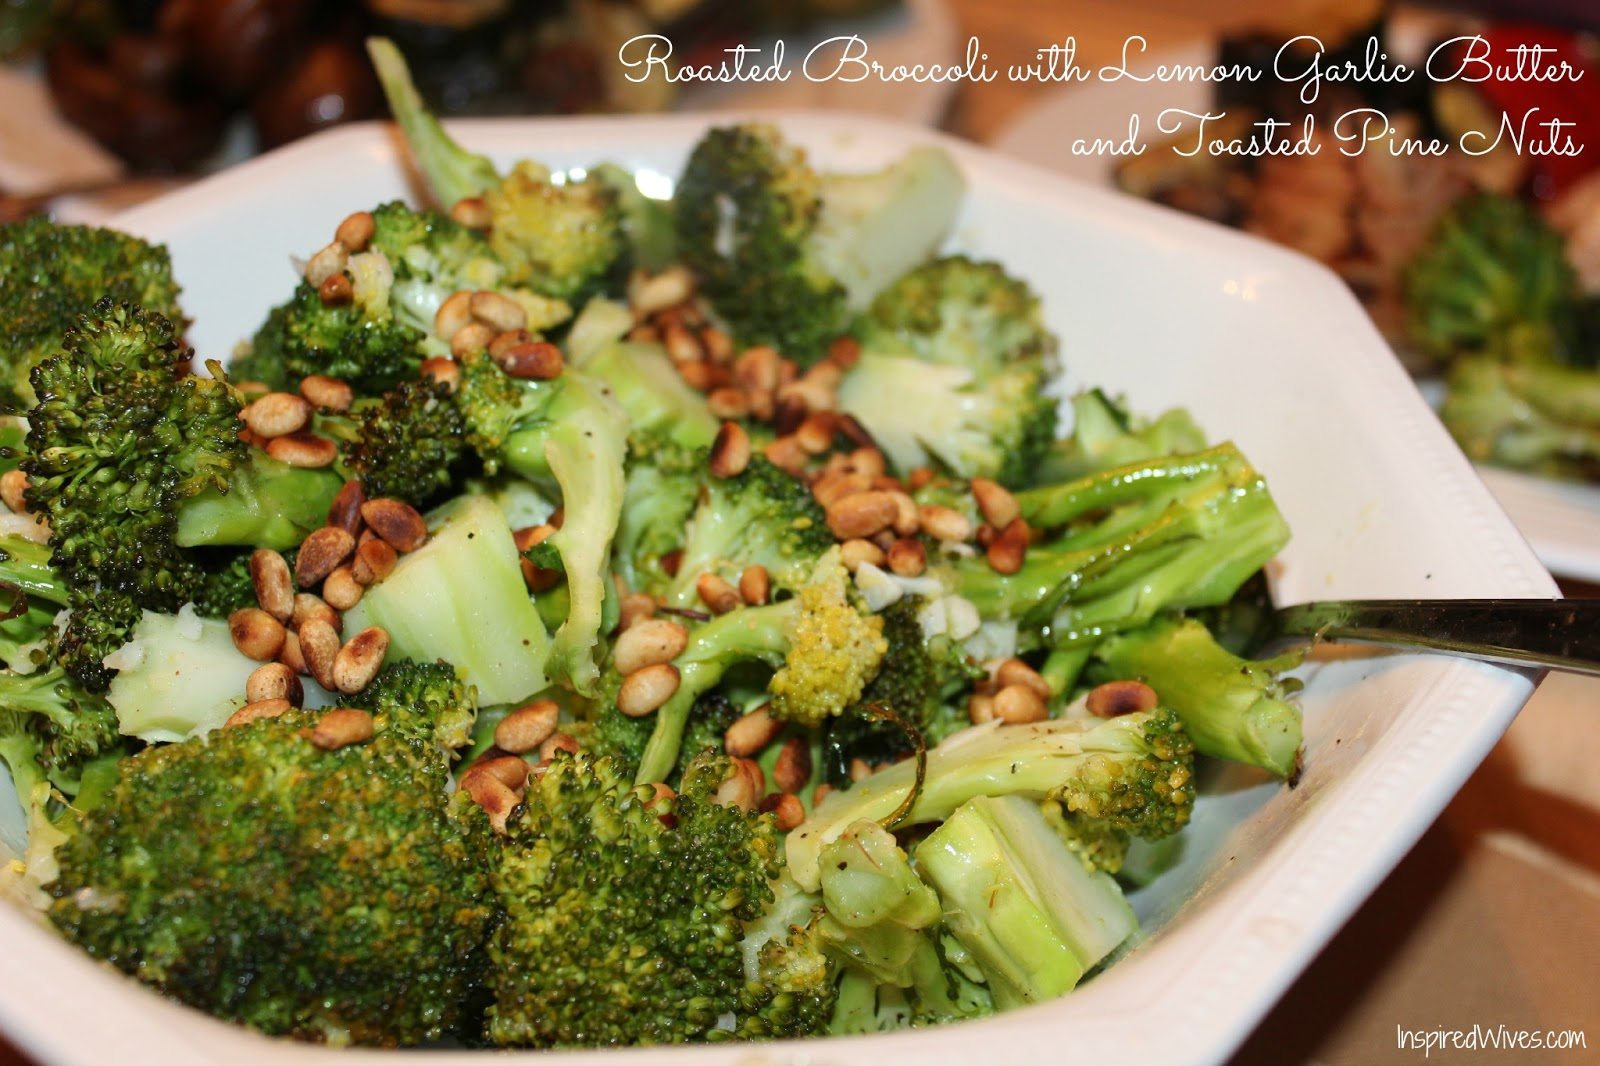 ... Wives: Roasted Broccoli with Lemon Garlic Butter and Toasted Pine Nuts